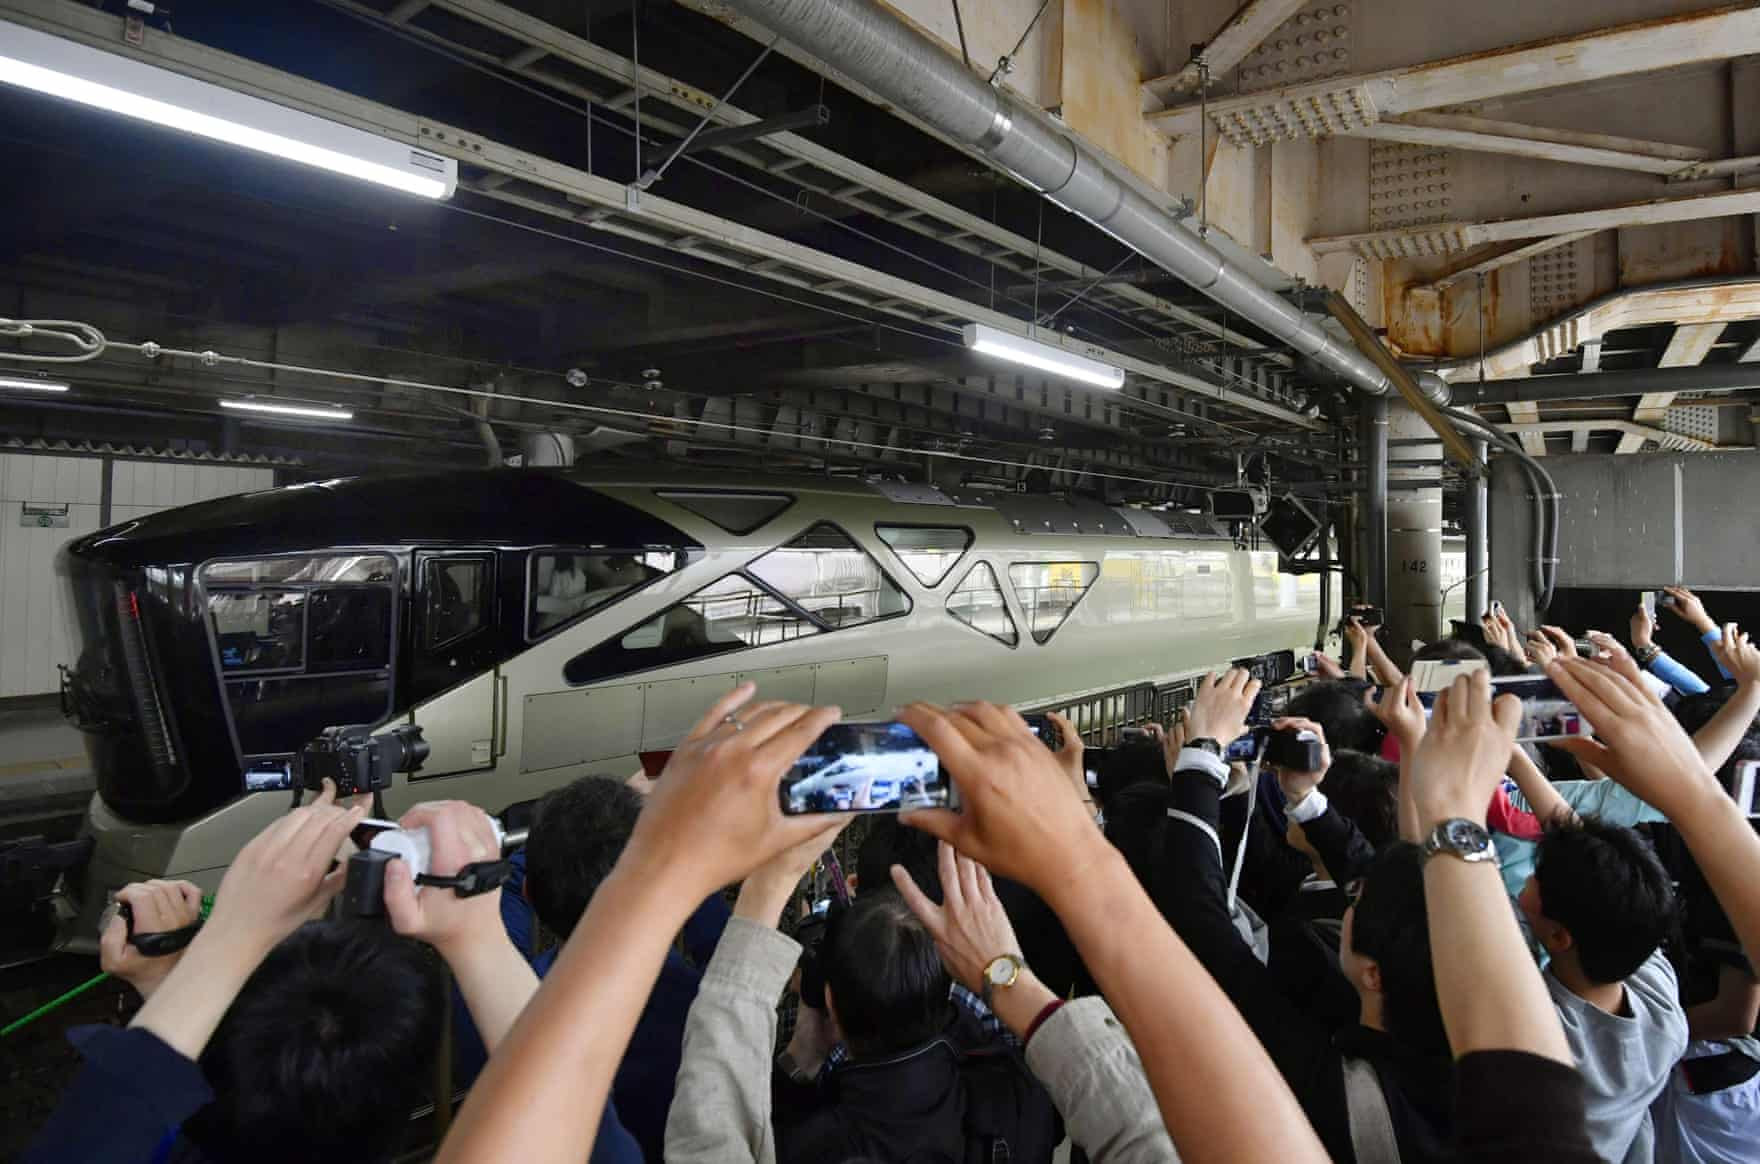 The sleeper train makes its debut at Ueno station in Tokyo for a four-day trip to north-eastern Japan